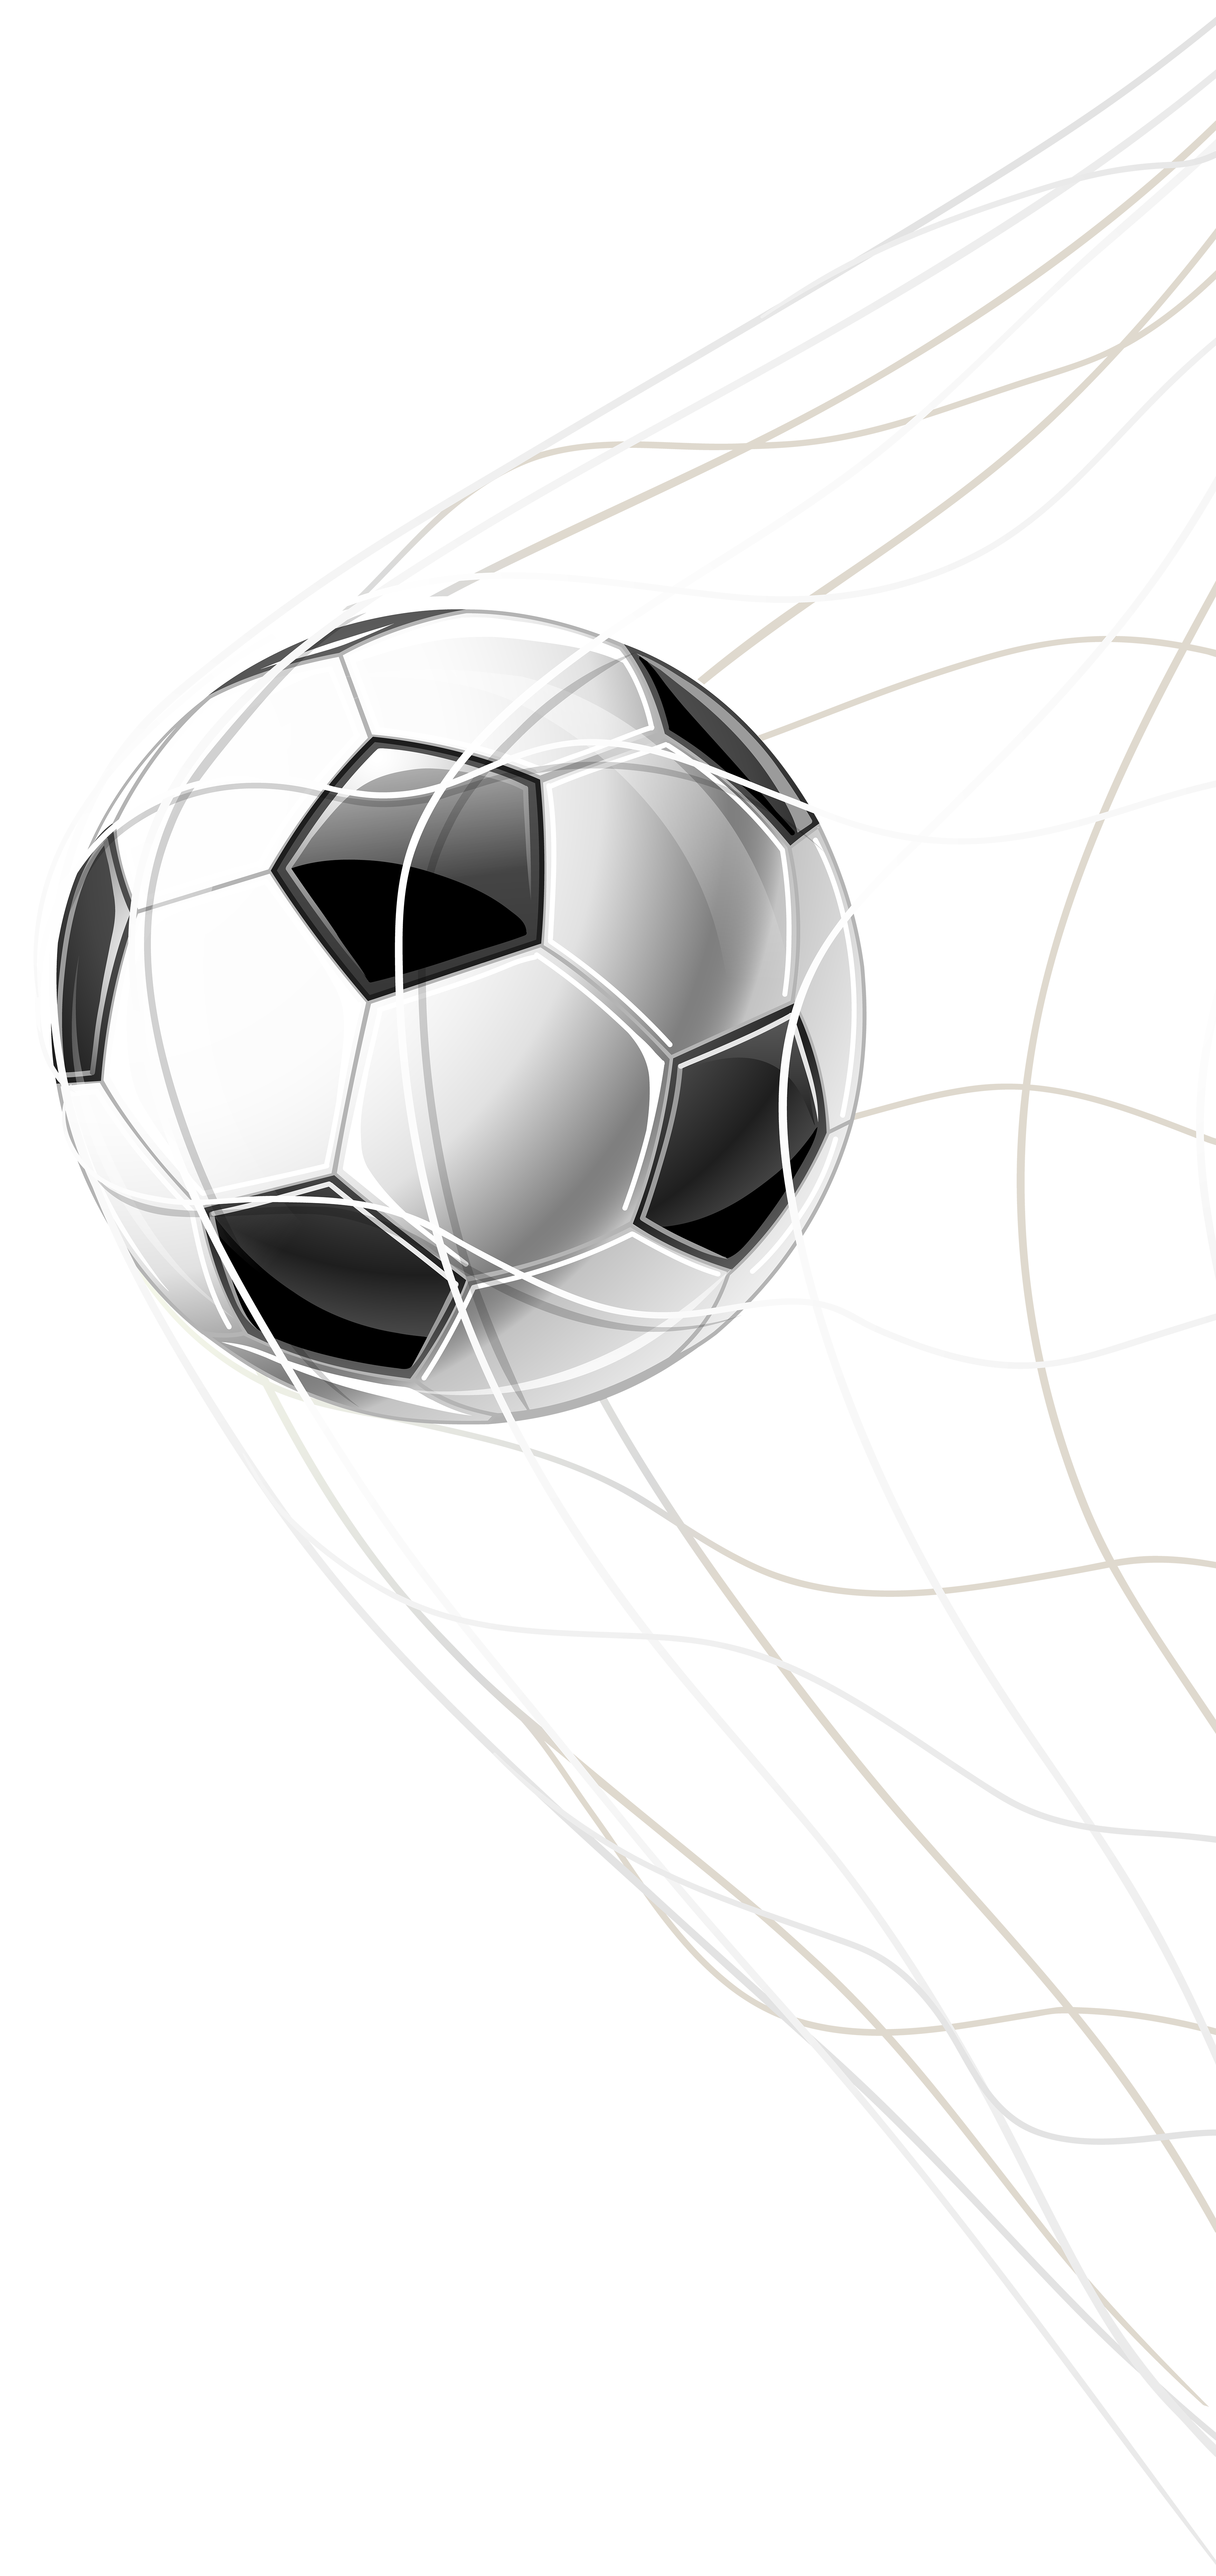 Soccer goal clipart png. In a net clip